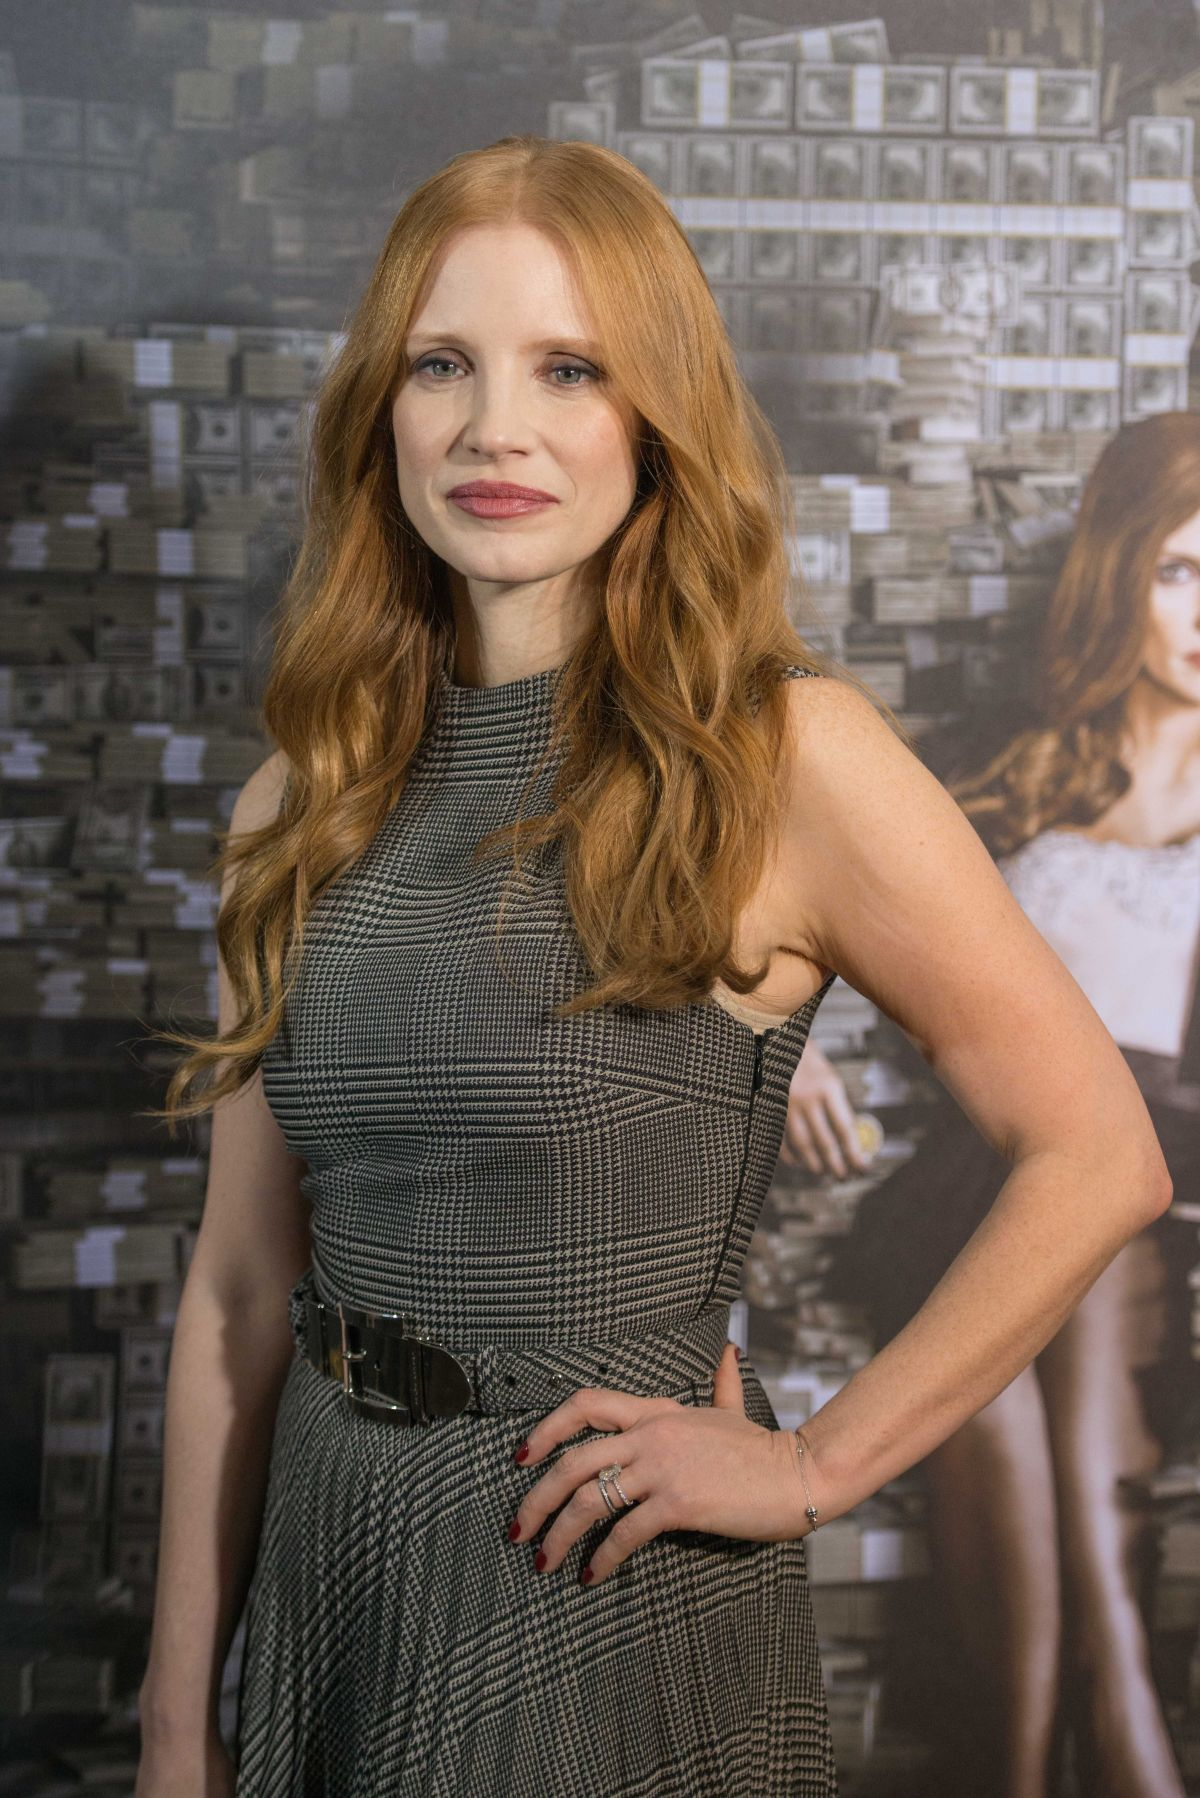 JESSICA CHASTAIN at Mollys Game Photocall in Berlin 12/05 ... Jessica Chastain